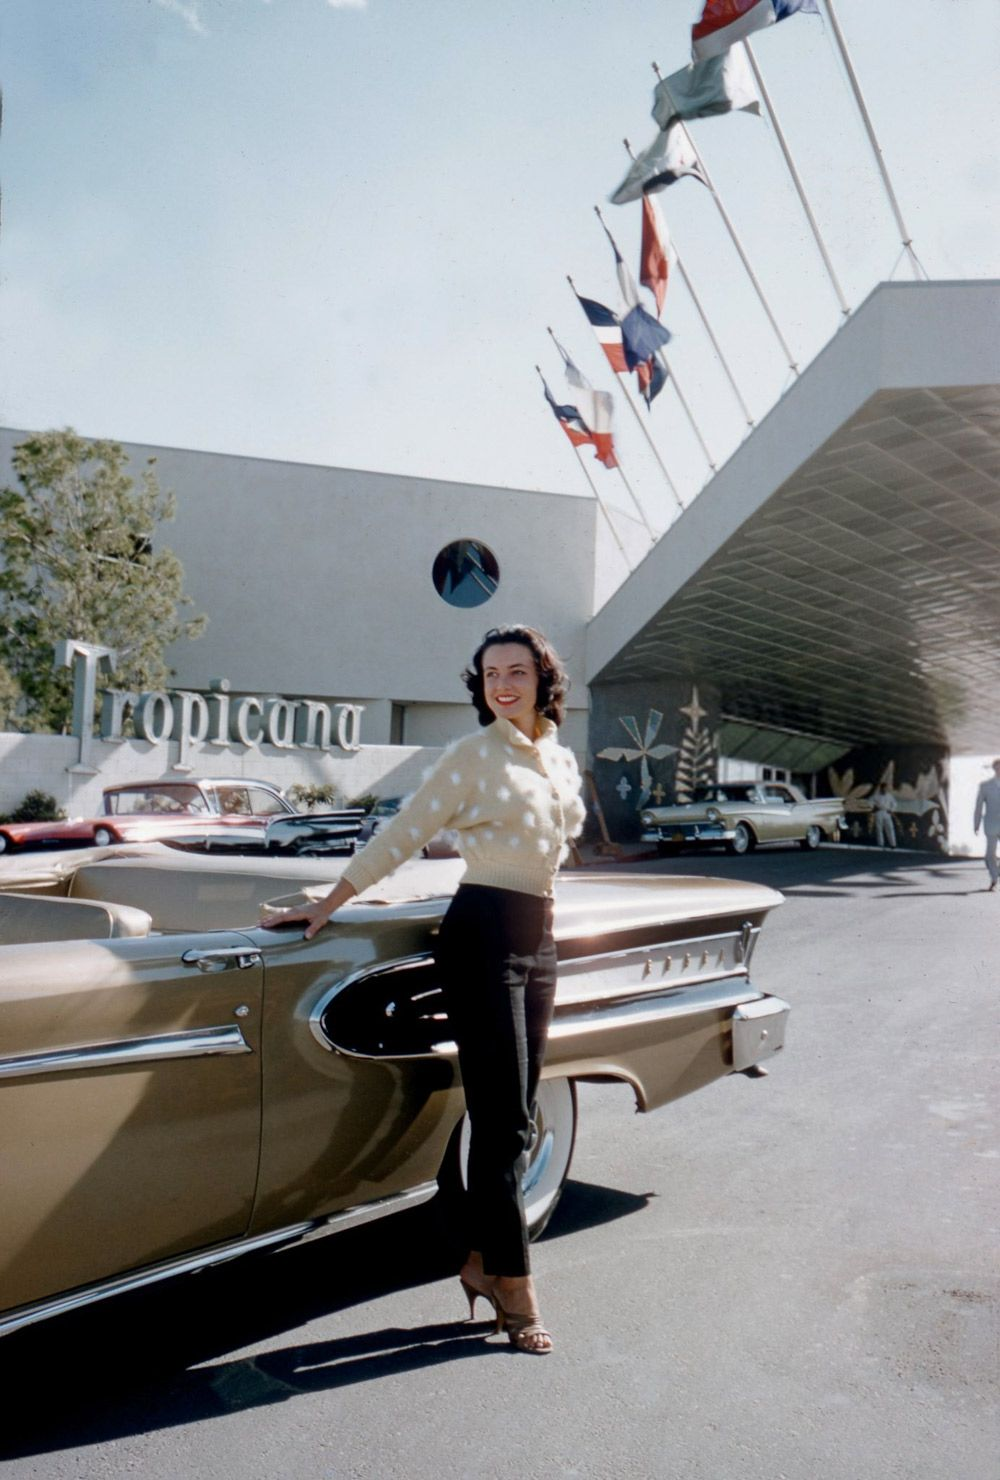 Las Vegas, 1957 at the Tropicana. The hotel was new and so was the '58 Ford Edsel Citation. Model: Kitty Dolan. Photo by Hy Peskin.